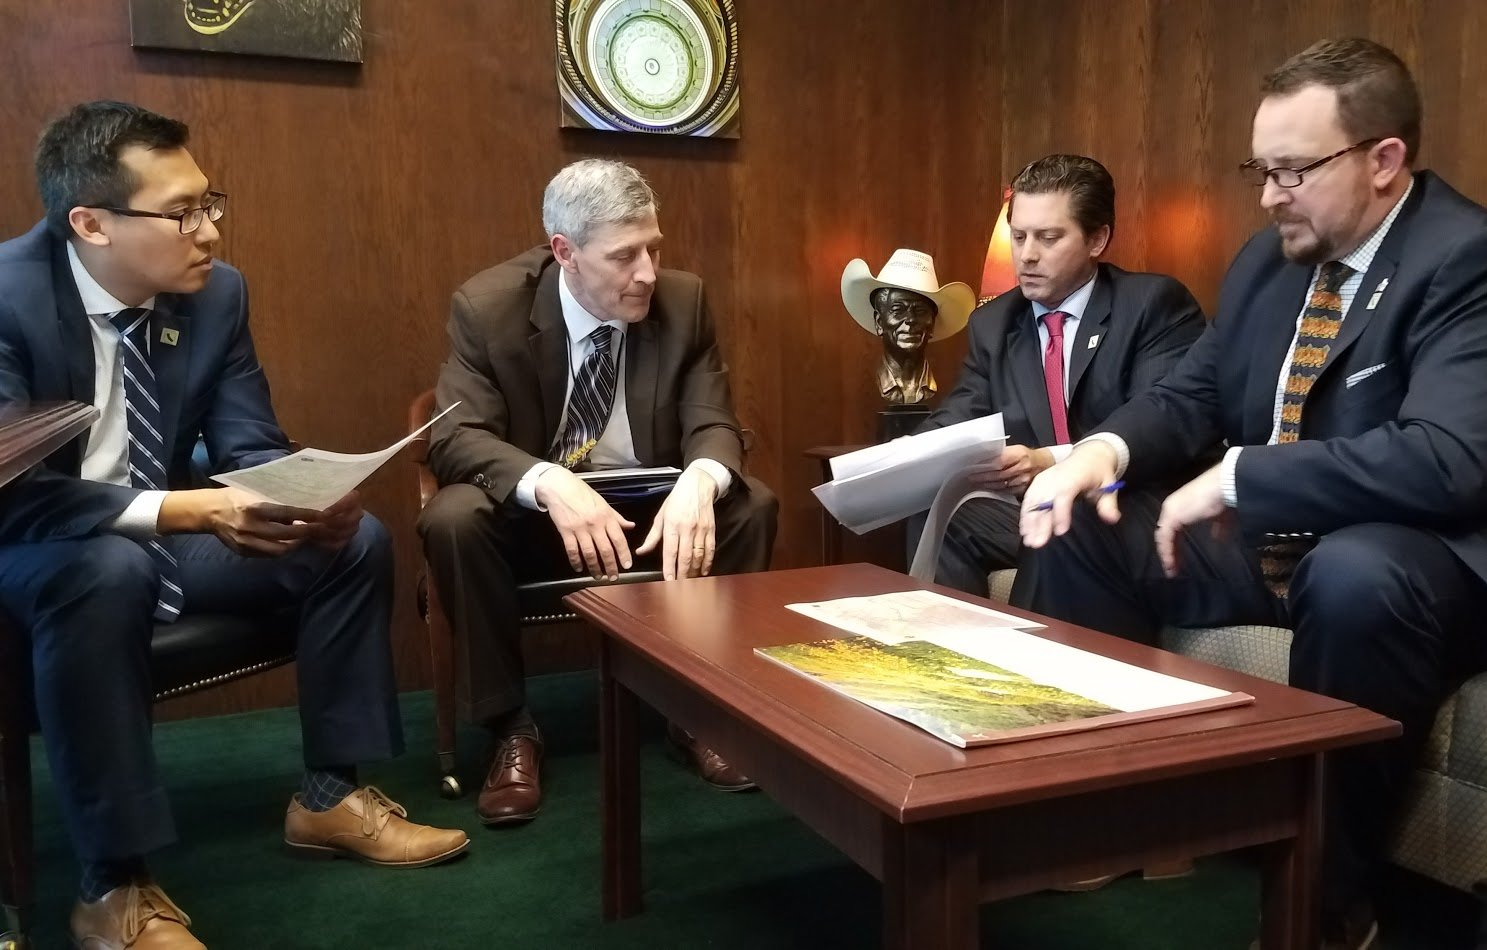 Assemblyman Jordan Cunningham meets with other officials regarding Highway 46 safety concerns. (Contributed photo)